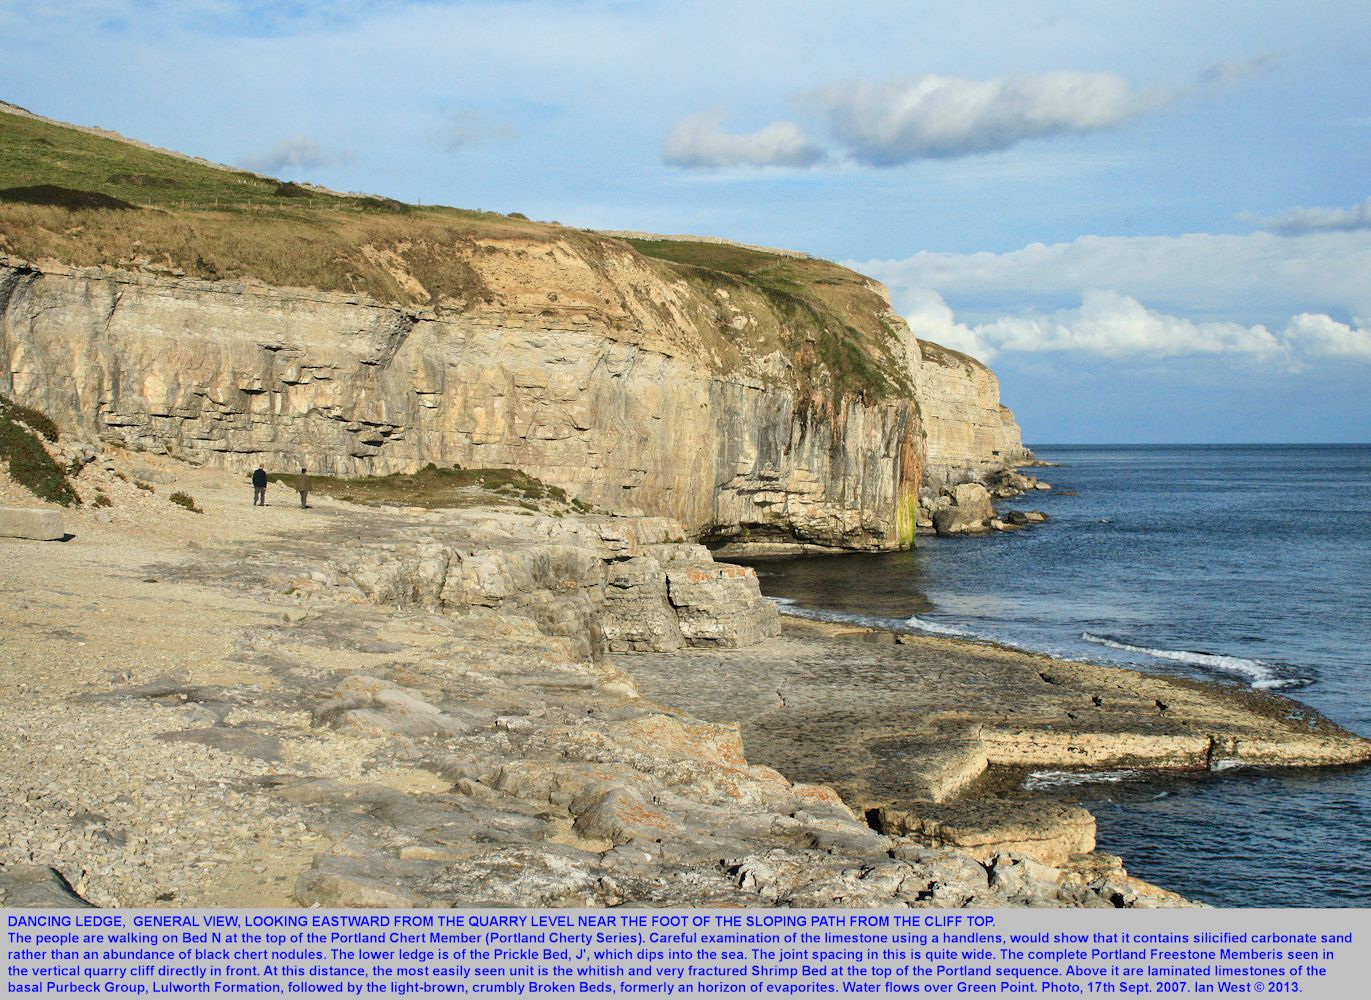 A general view of the old quarry floor of Dancing Ledge, near Swanage, Isle of Purbeck, Dorset, looking eastward towards Green Point, 7th September 2007